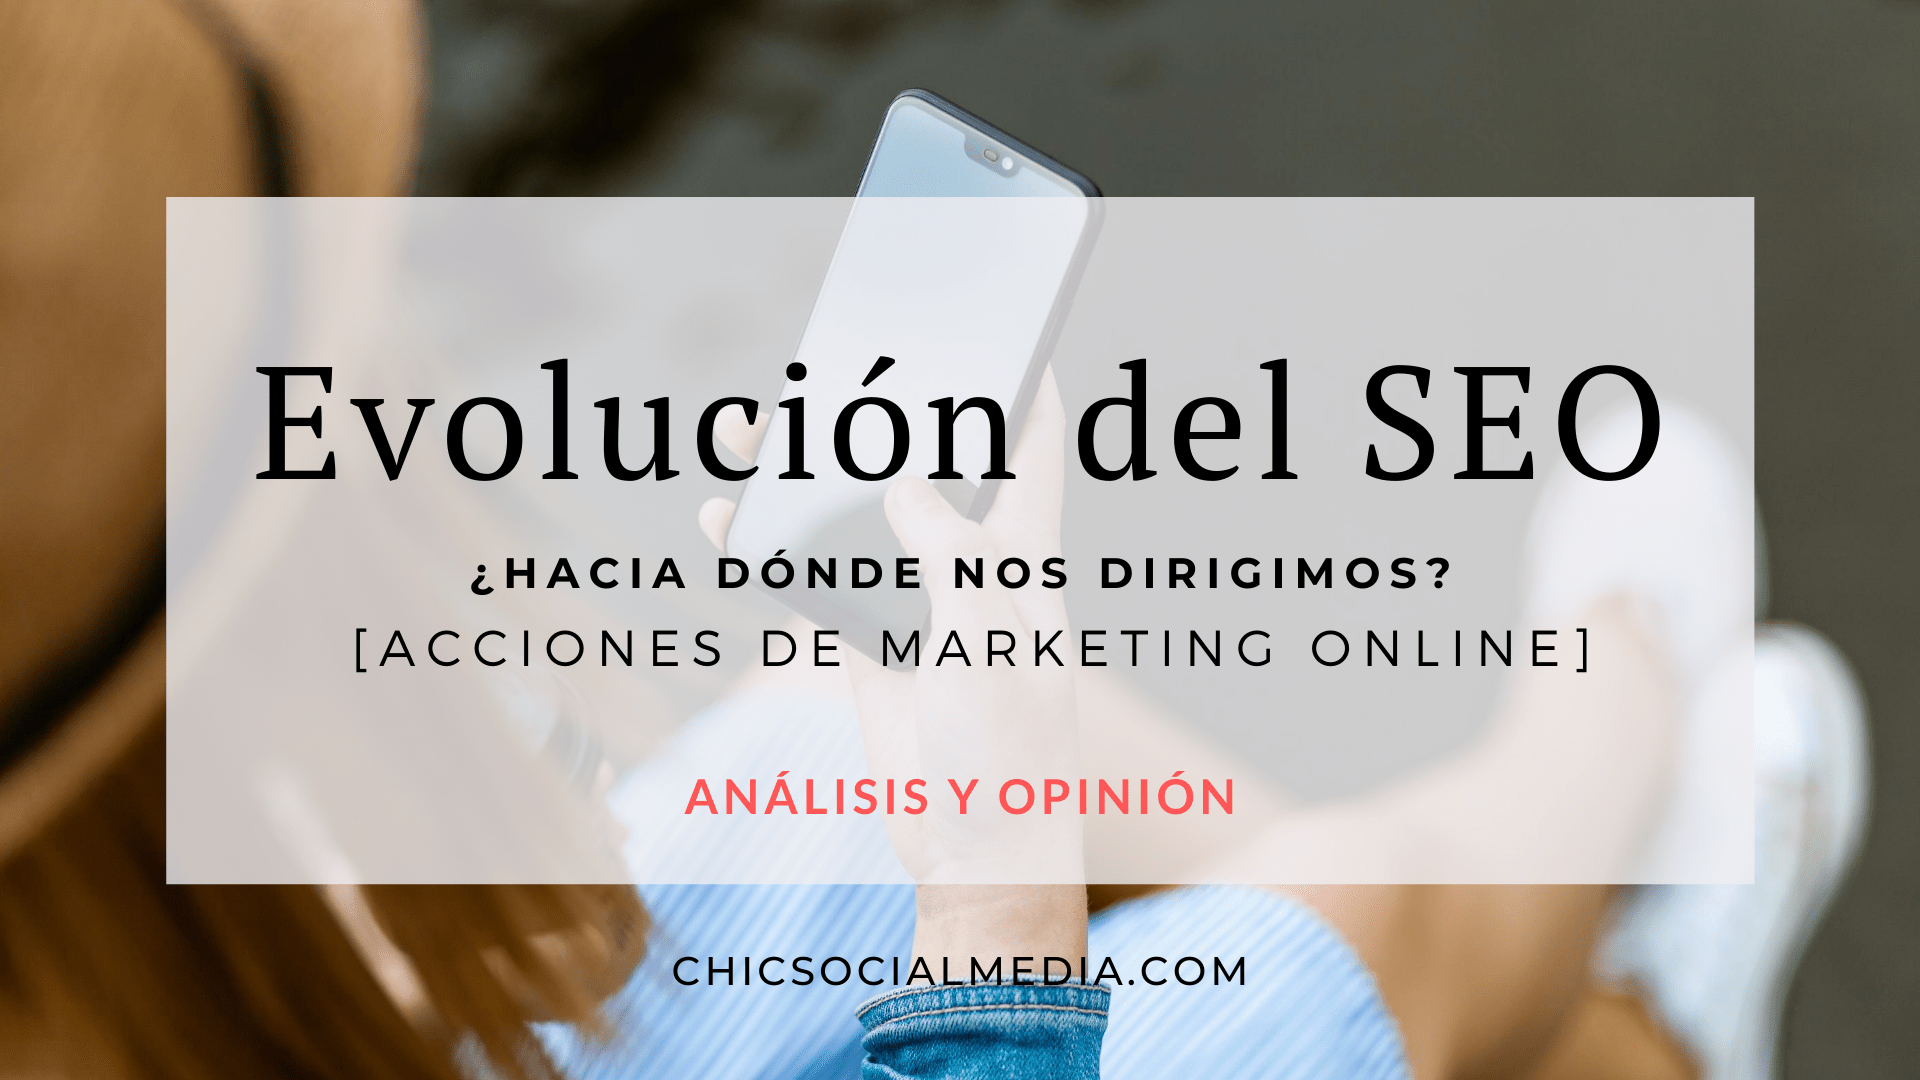 Chic Social Media Blog. Evolución SEO.